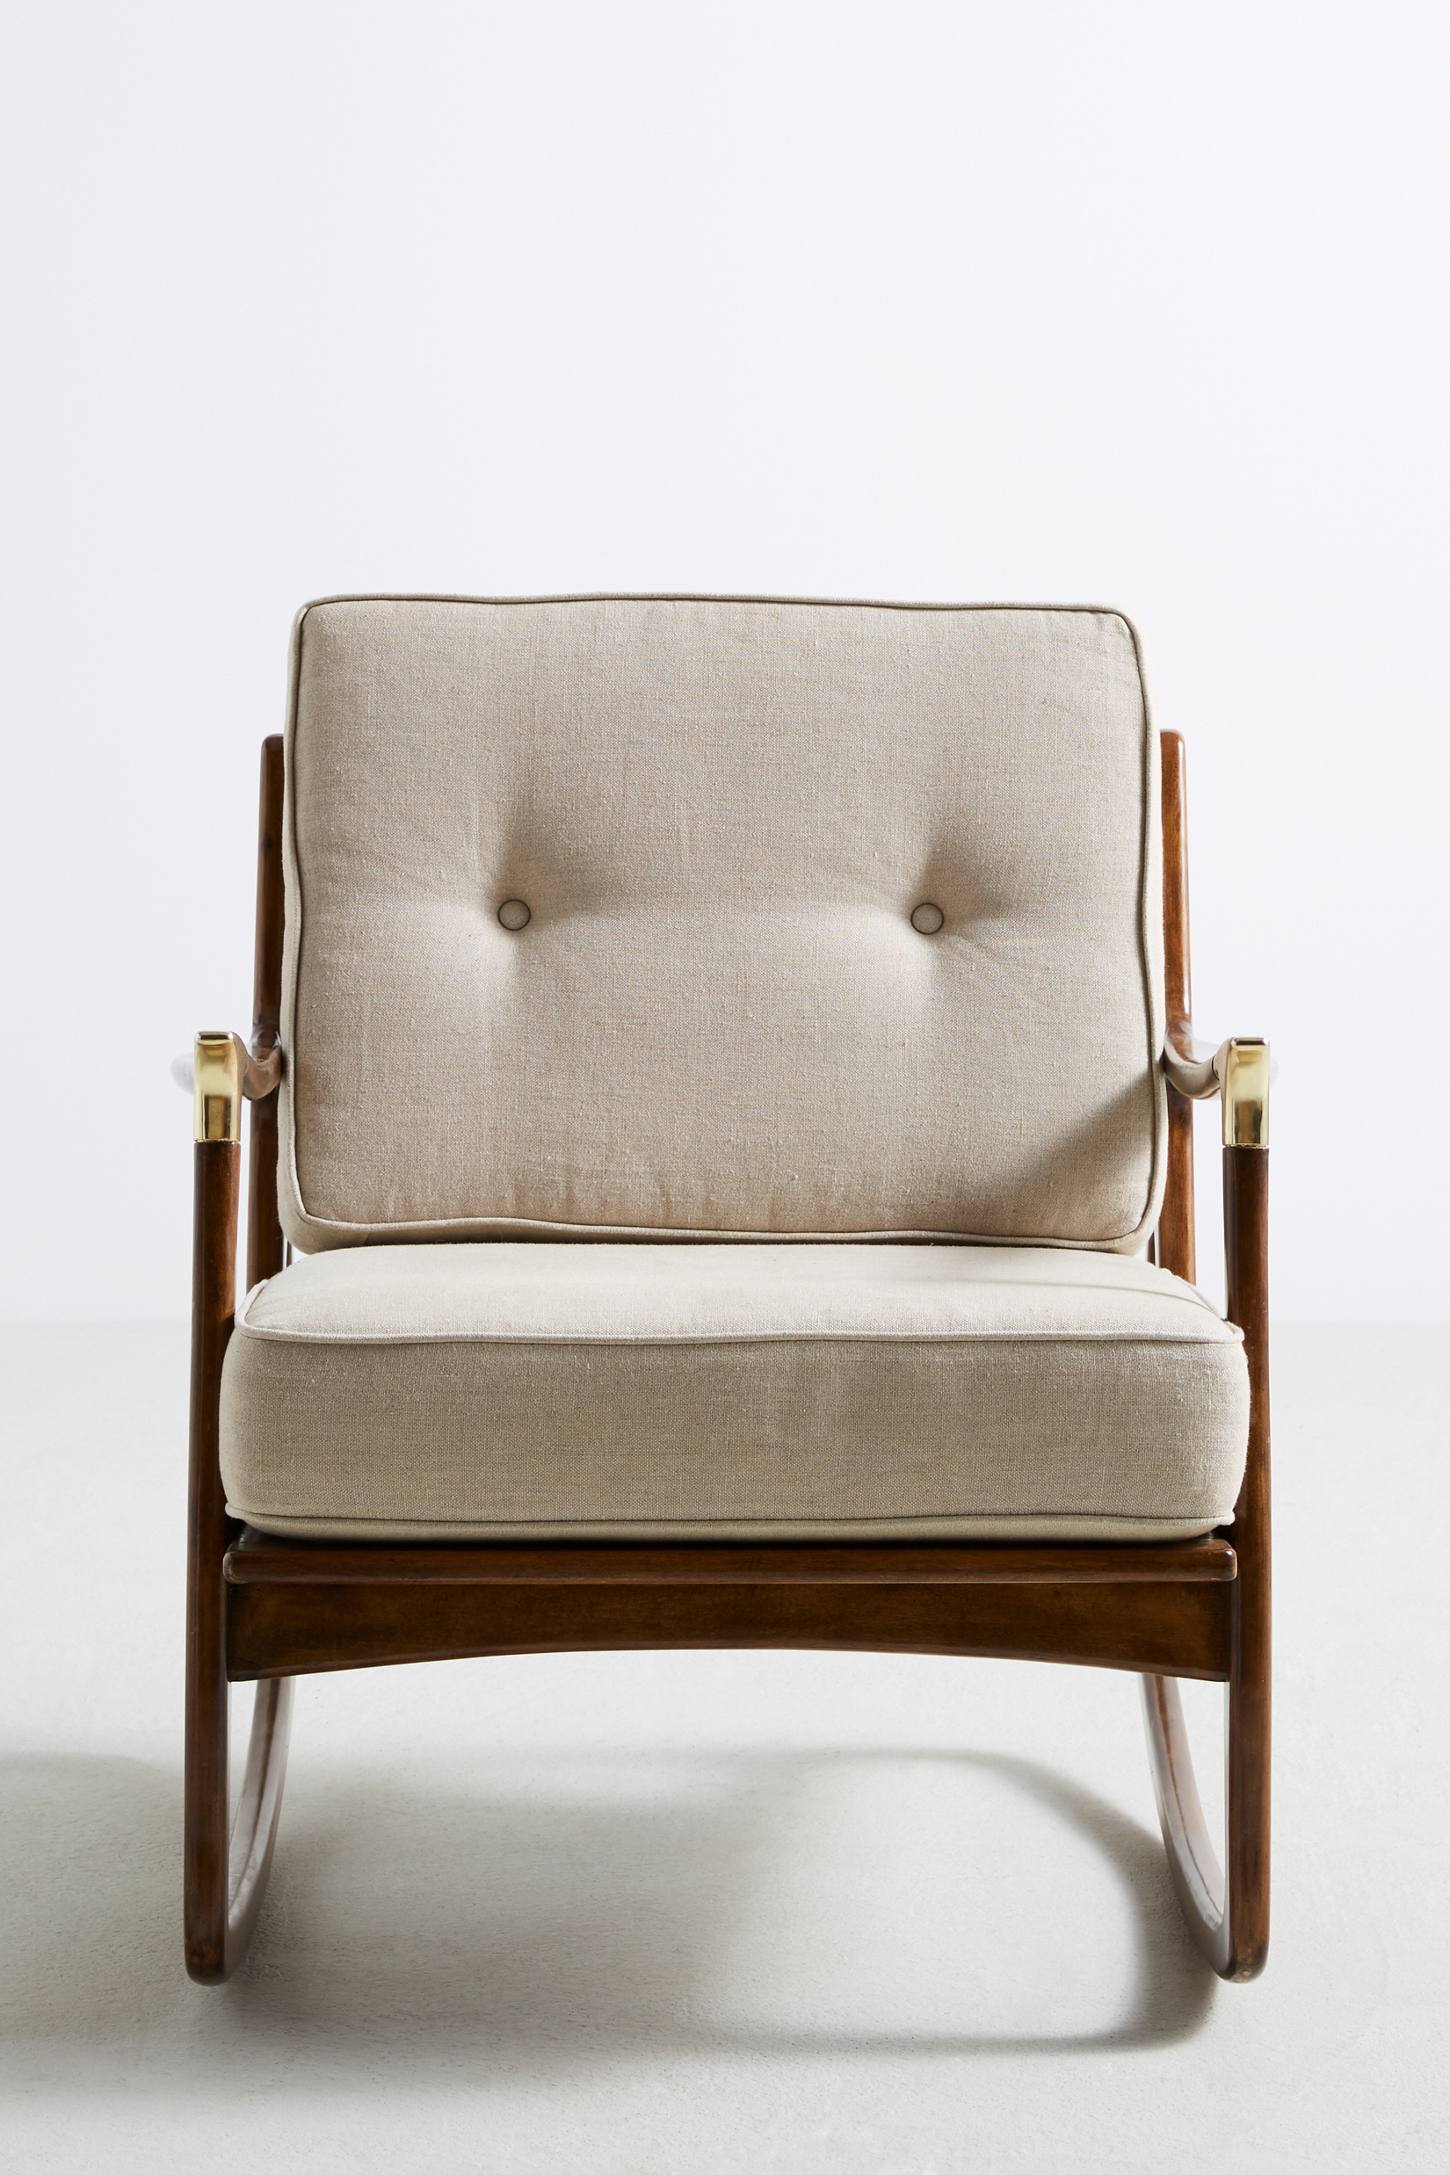 Miraculous Haverhill Rocking Chair Anthropologie Onthecornerstone Fun Painted Chair Ideas Images Onthecornerstoneorg